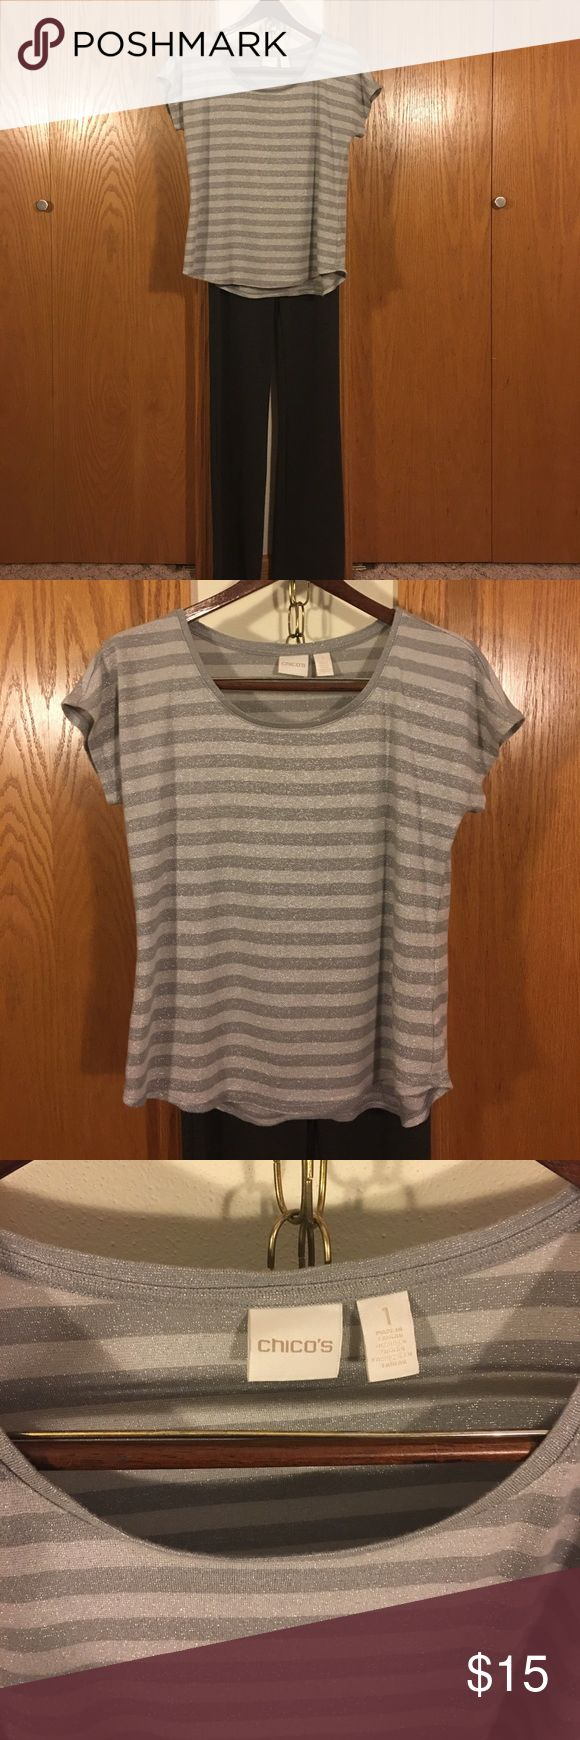 "Chico's Silver Tee that Shimmers! Striped silver and great Tee that has metallic thread woven in fabric.  Chest 18 1/2"" length from shoulder to bottom is 21 1/2"" in front back length measures 23"". Fabric content is cotton, modal, nylon and metallic. Chico's Tops Tees - Short Sleeve"